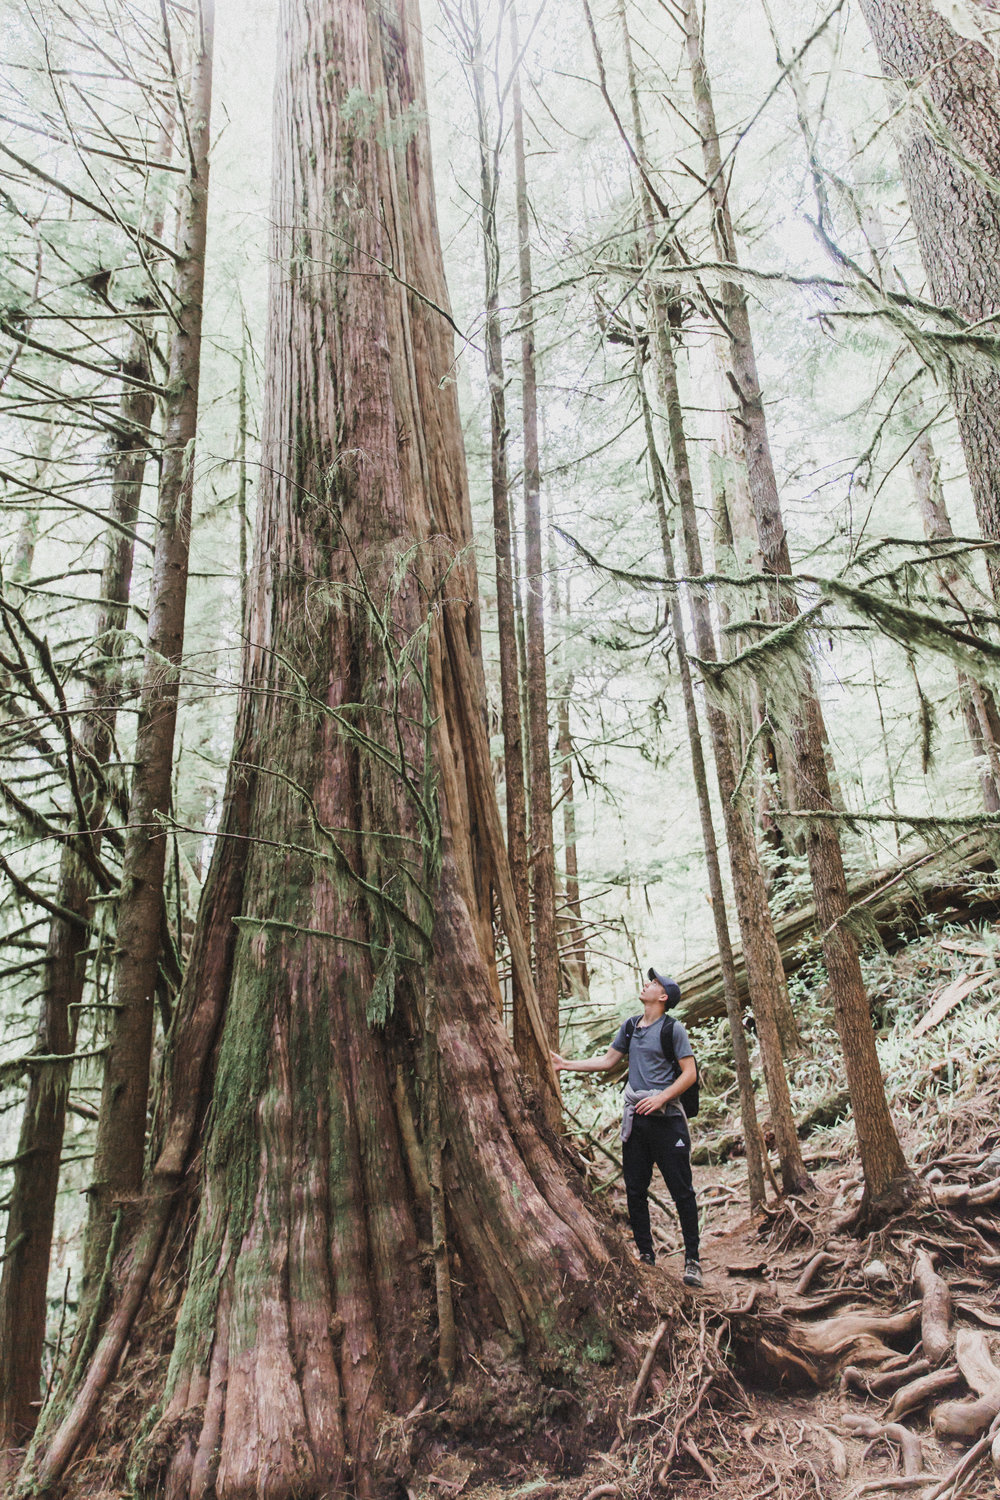 The trees in British Columbia are INSANE. Honestly the photos don't do them justice.